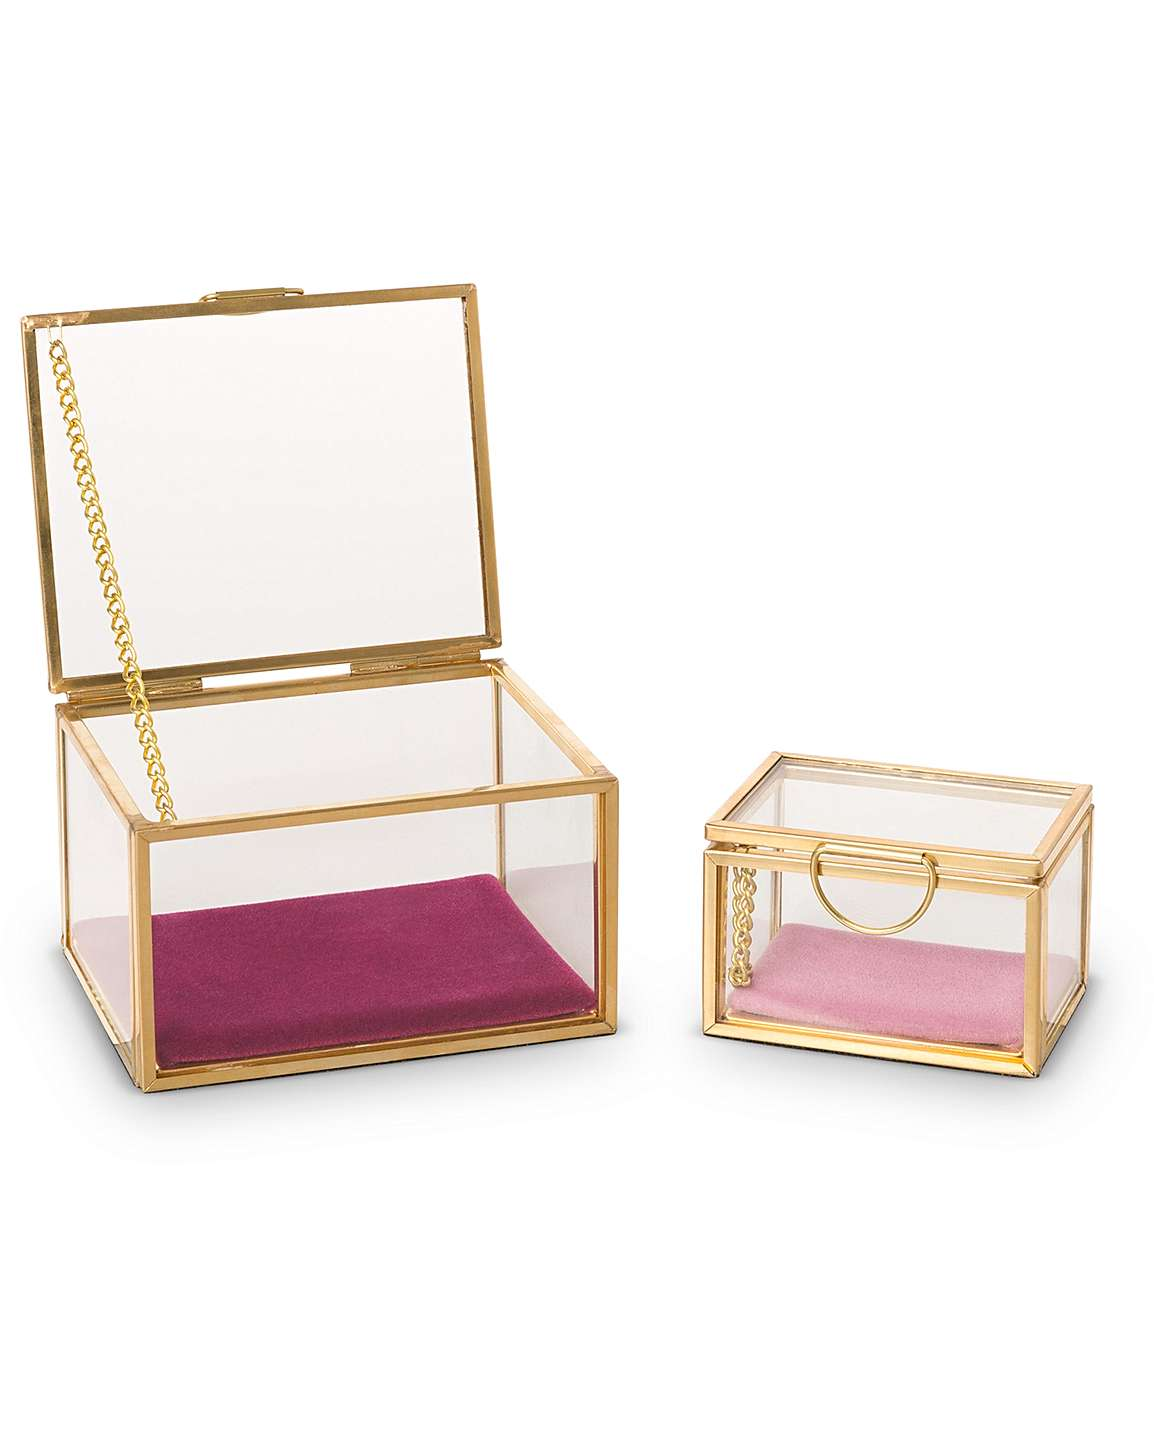 Set of Two Glass Jewelry Boxes - Cocus Pocus